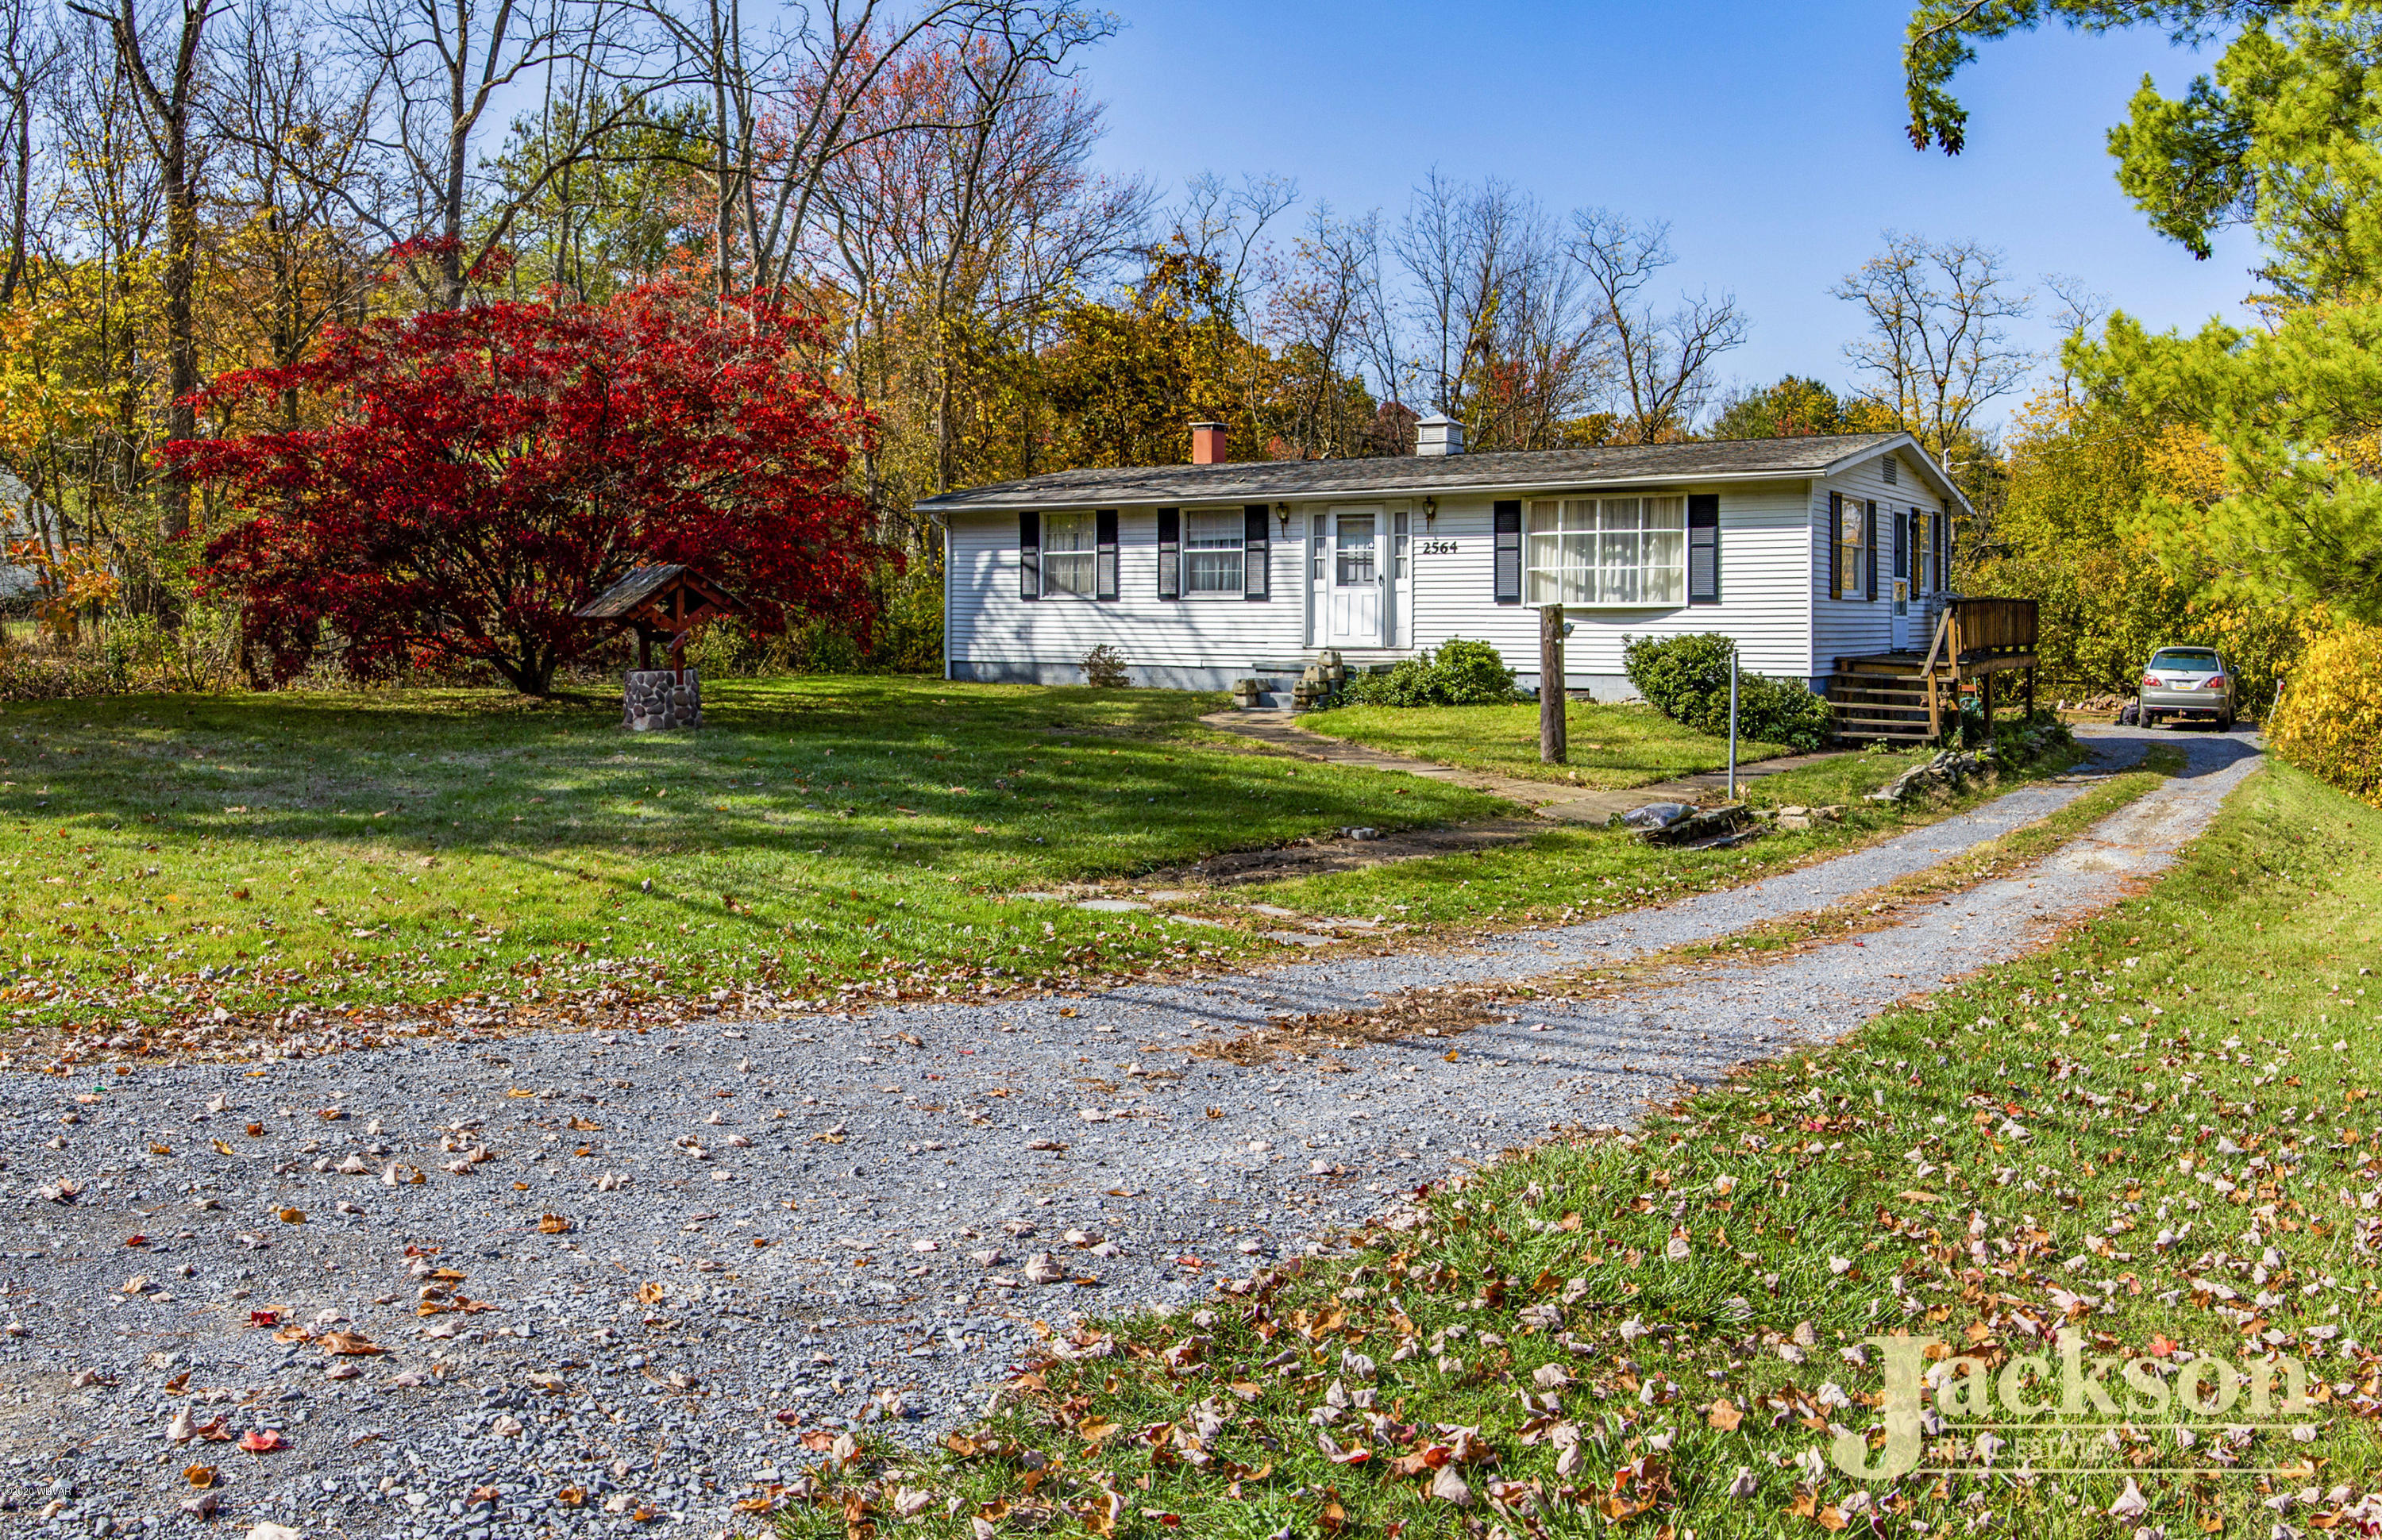 2564 PA-654 HIGHWAY, Williamsport, PA 17702, 3 Bedrooms Bedrooms, ,1 BathroomBathrooms,Residential,For sale,PA-654,WB-91416